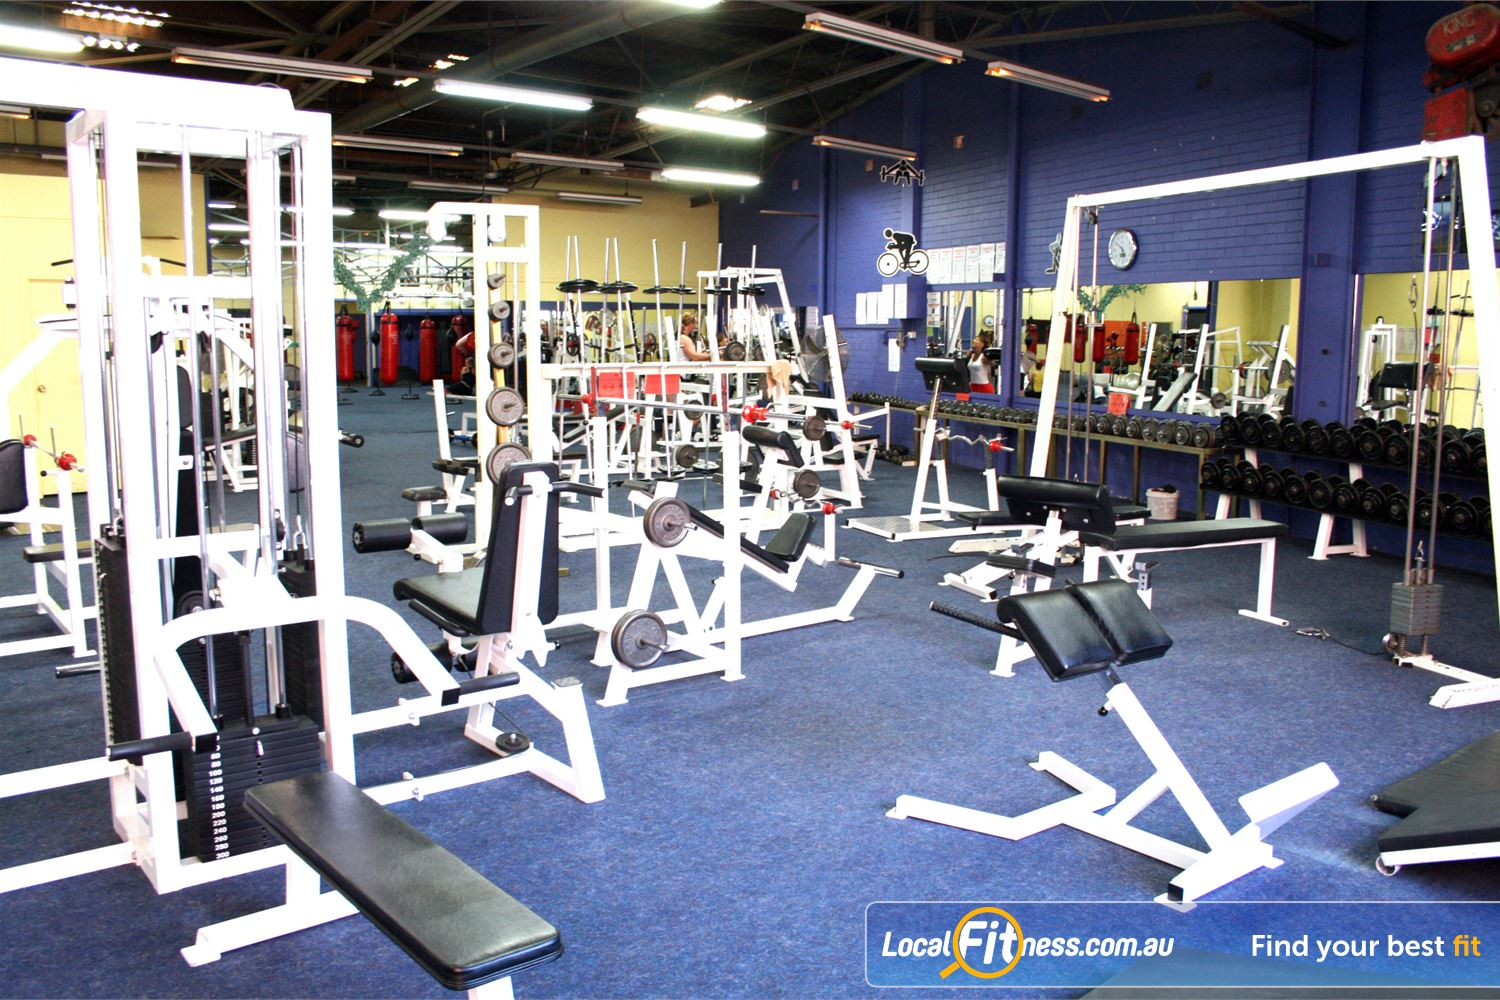 FITafex Gymnasium Near Essendon North The Essendon gym includes a full range of easy to use pin-loading equipment.